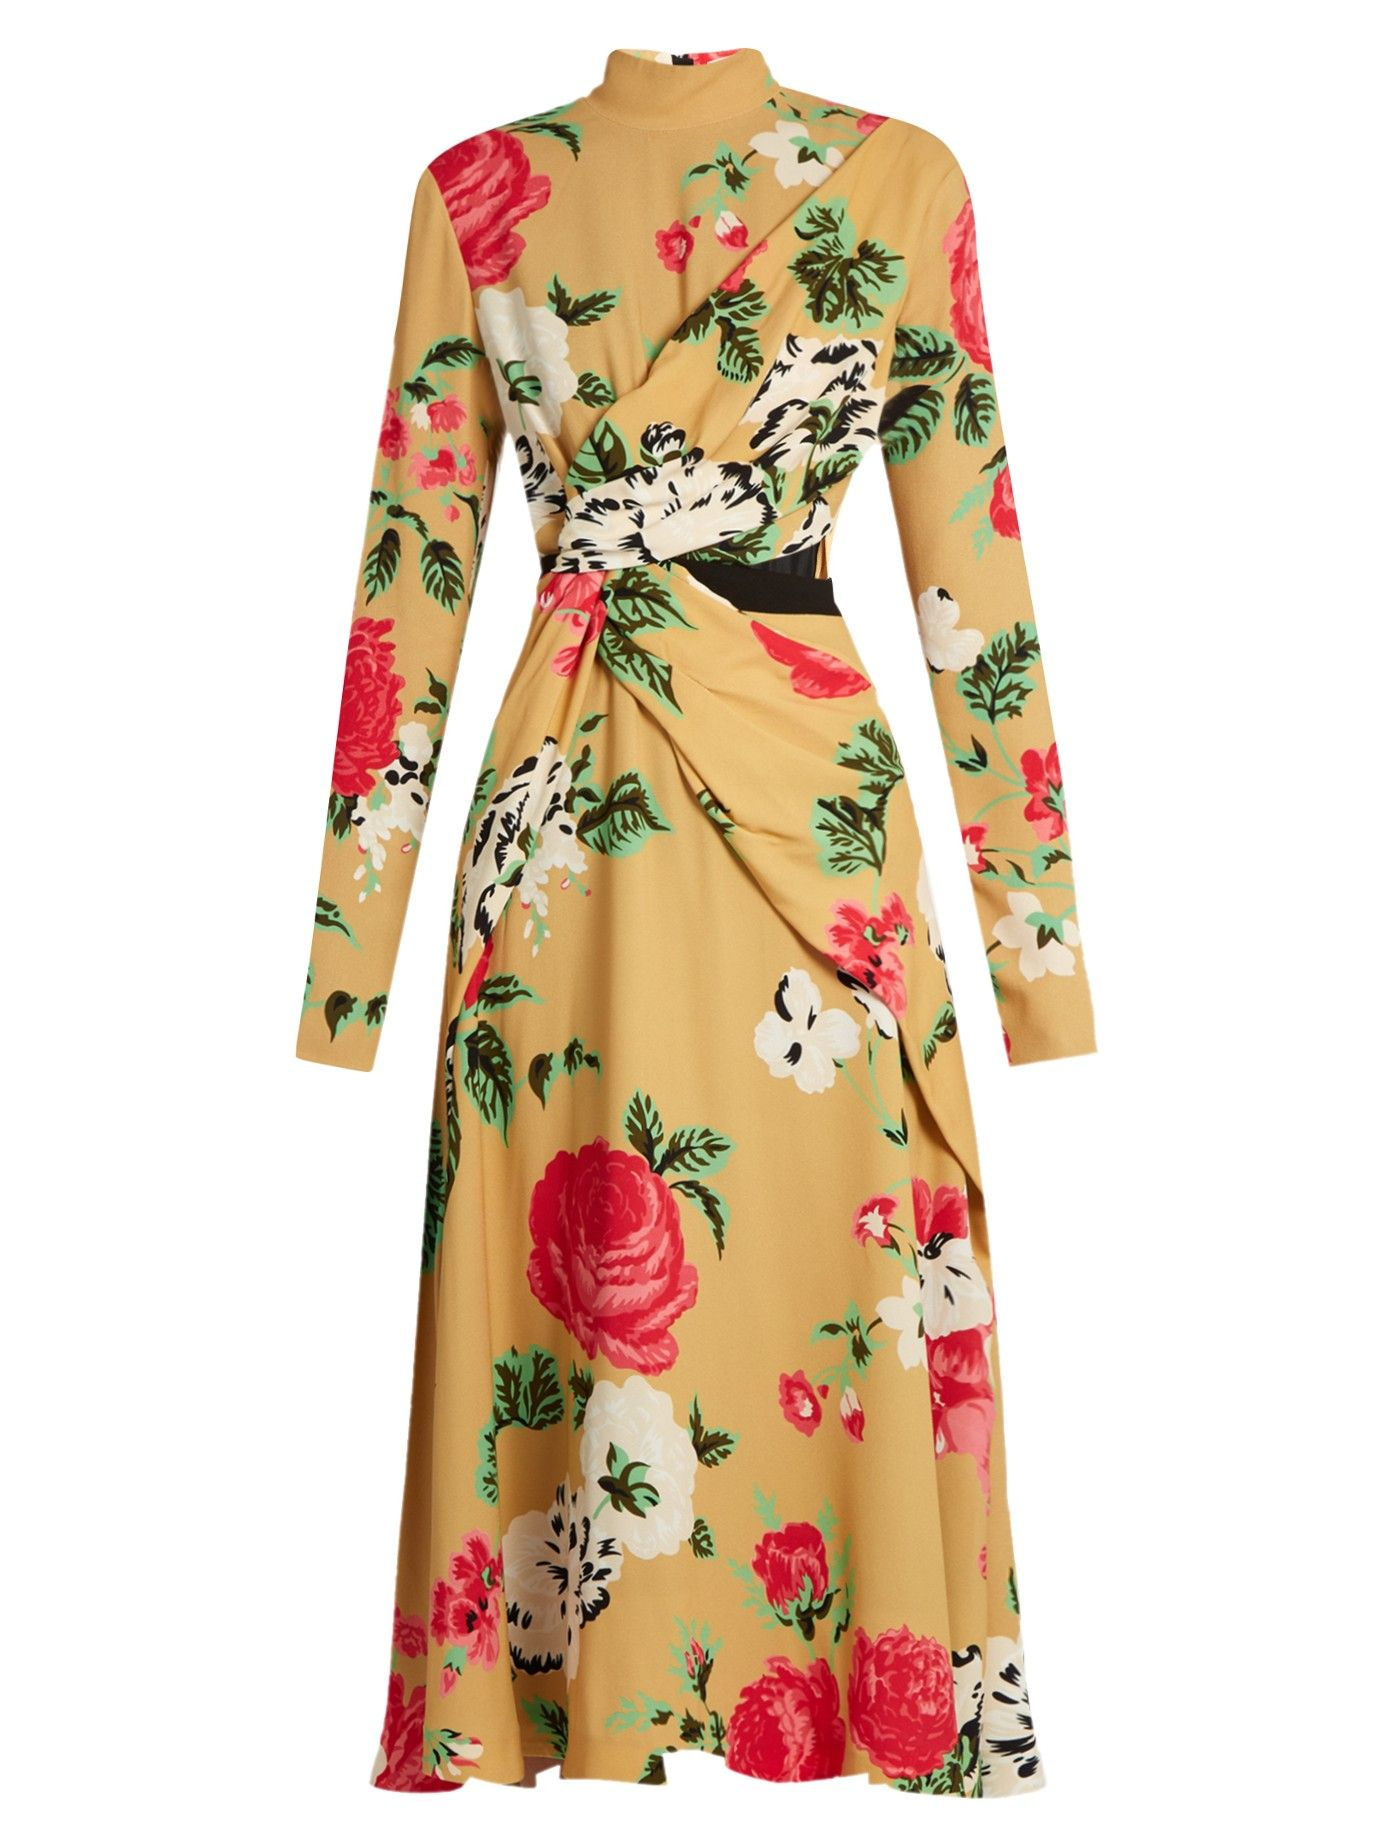 MSGM Ocre & Coral Floral-Print Crepe Dress. This is Lovely and Demure with